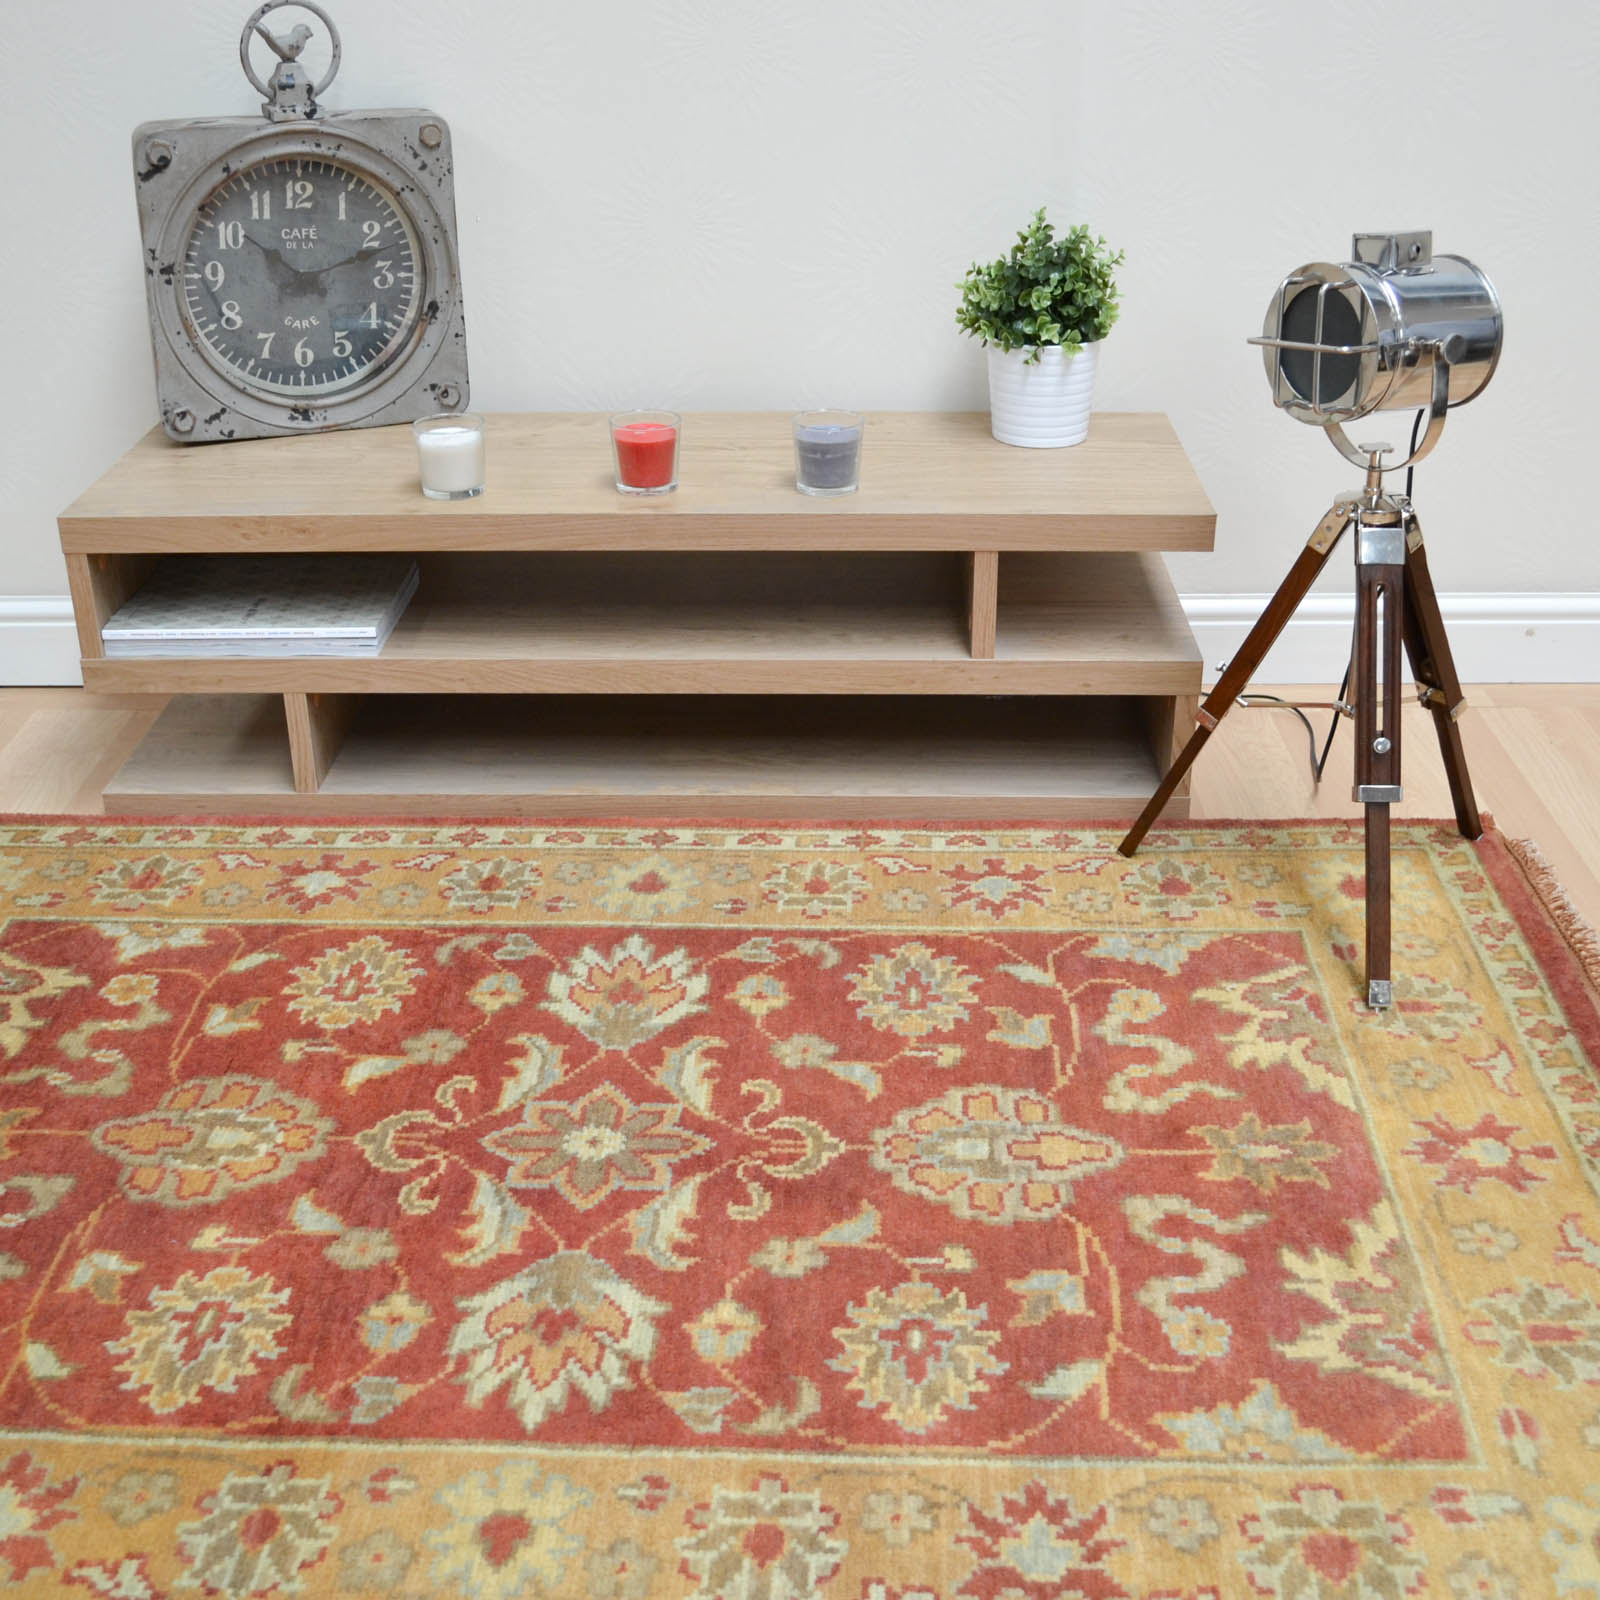 Taj Indian Agra Rugs - Hand Knotted Pure Wool in Rust Gold